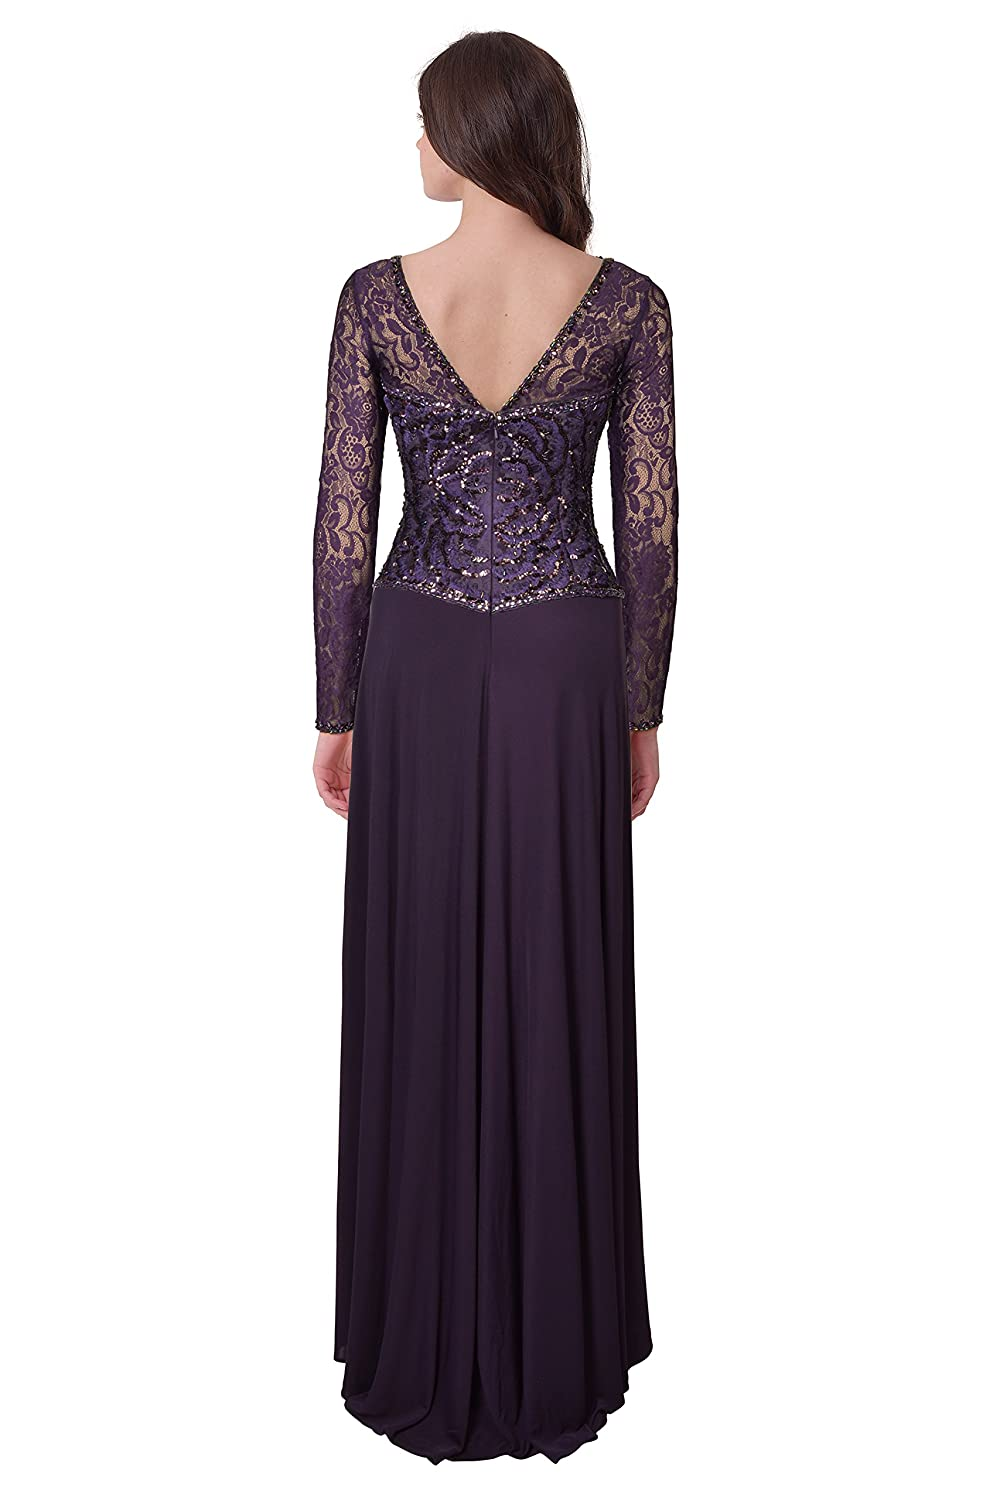 Sue wong vintage lace gown the